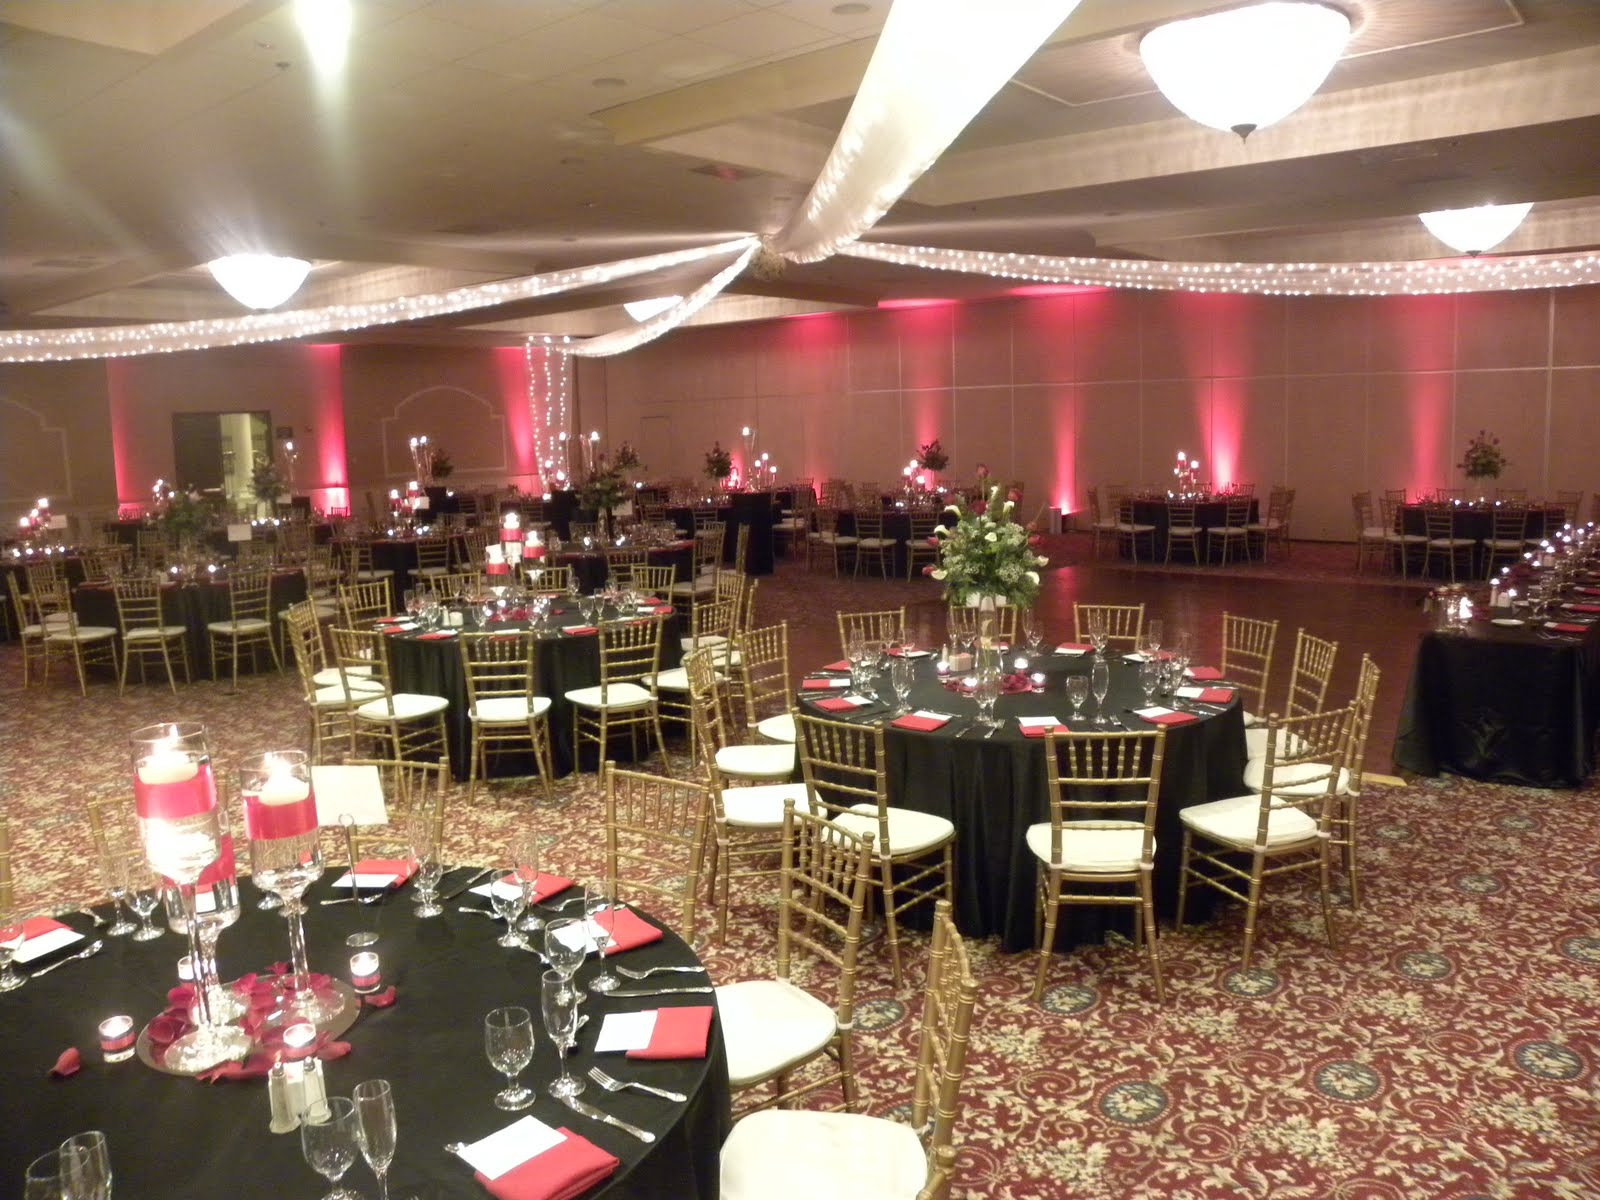 Pacific Hills Banquet & Catering Blog: Black and Red